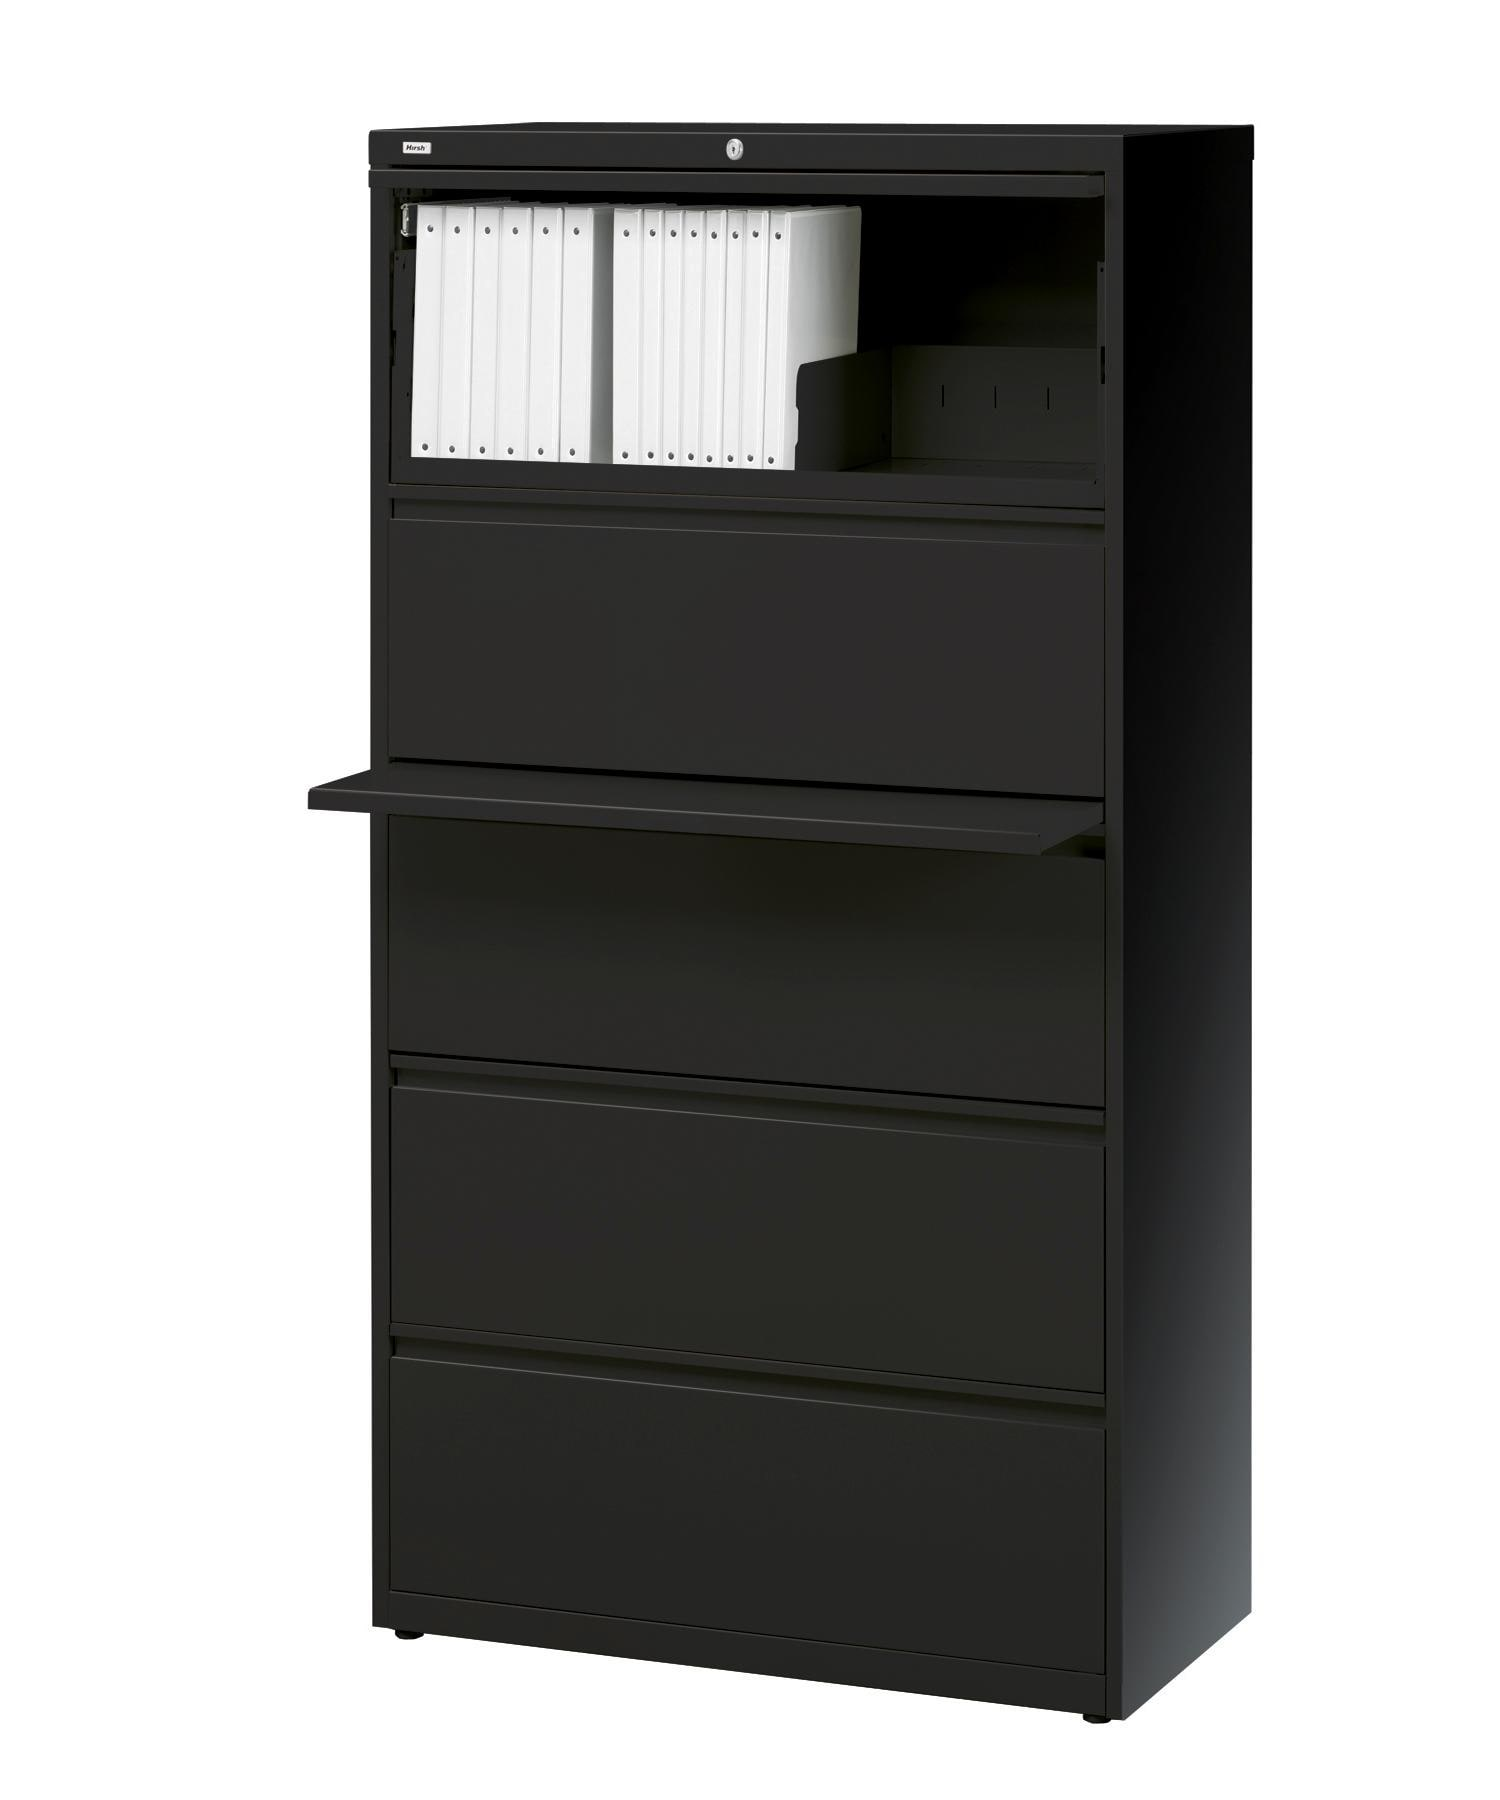 5 Drawer Metal File Cabinet Hirsh Hl10000 Series 5 Drawer Commercial Lateral File Cabinet